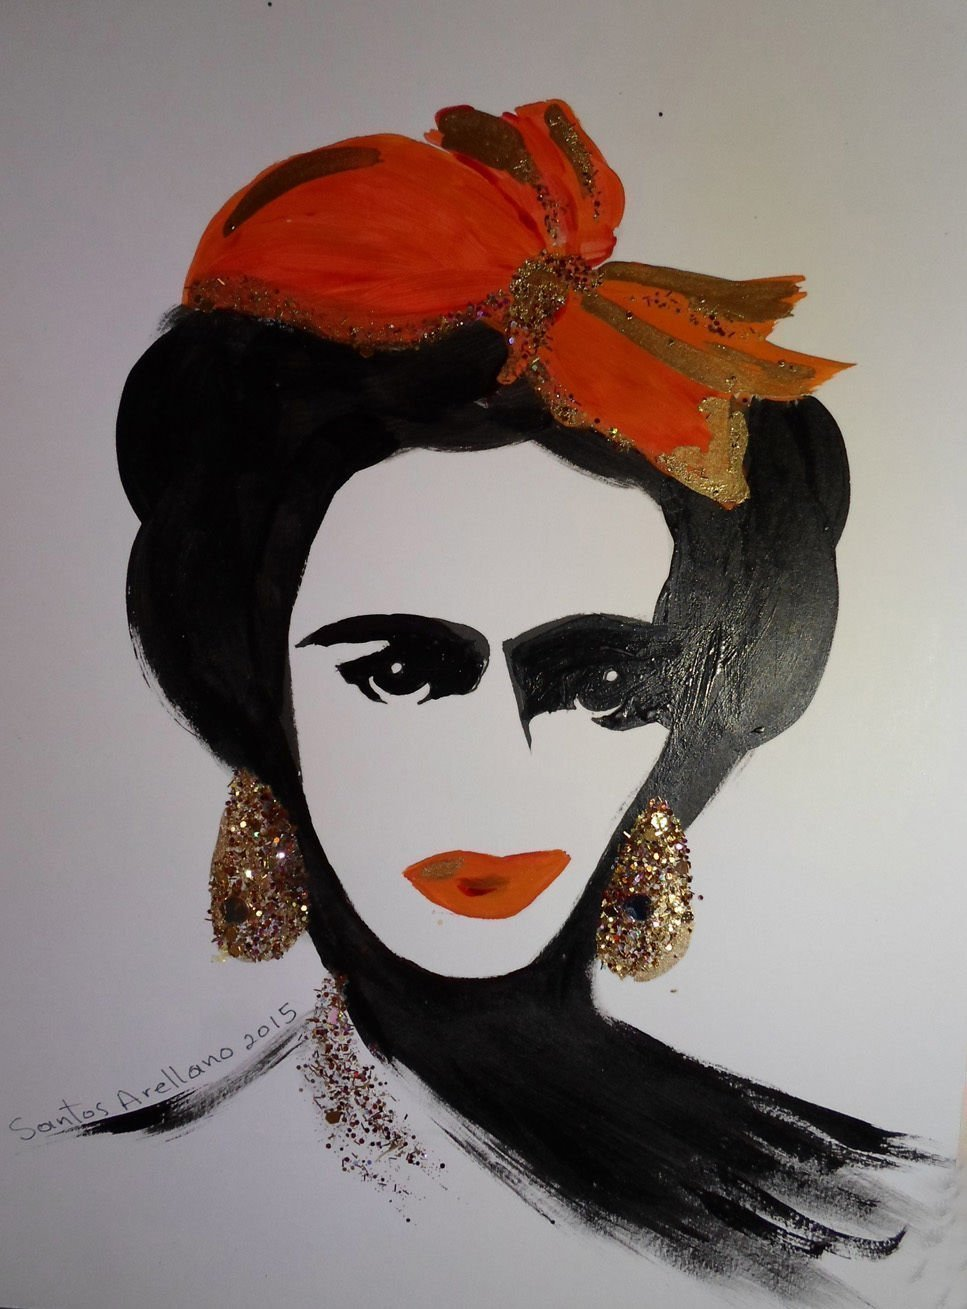 FRIDA KAHLO - RED BOW - Abstract - POP - MEXICAN FOLK ART Style :: ORIGINAL PAINTING - Acrylics and Ink - Modern Painting on Heavy White Paper - SIZE:11''x8.5'' - Signed by the Artist by Santos Arellano - Art & Crafts